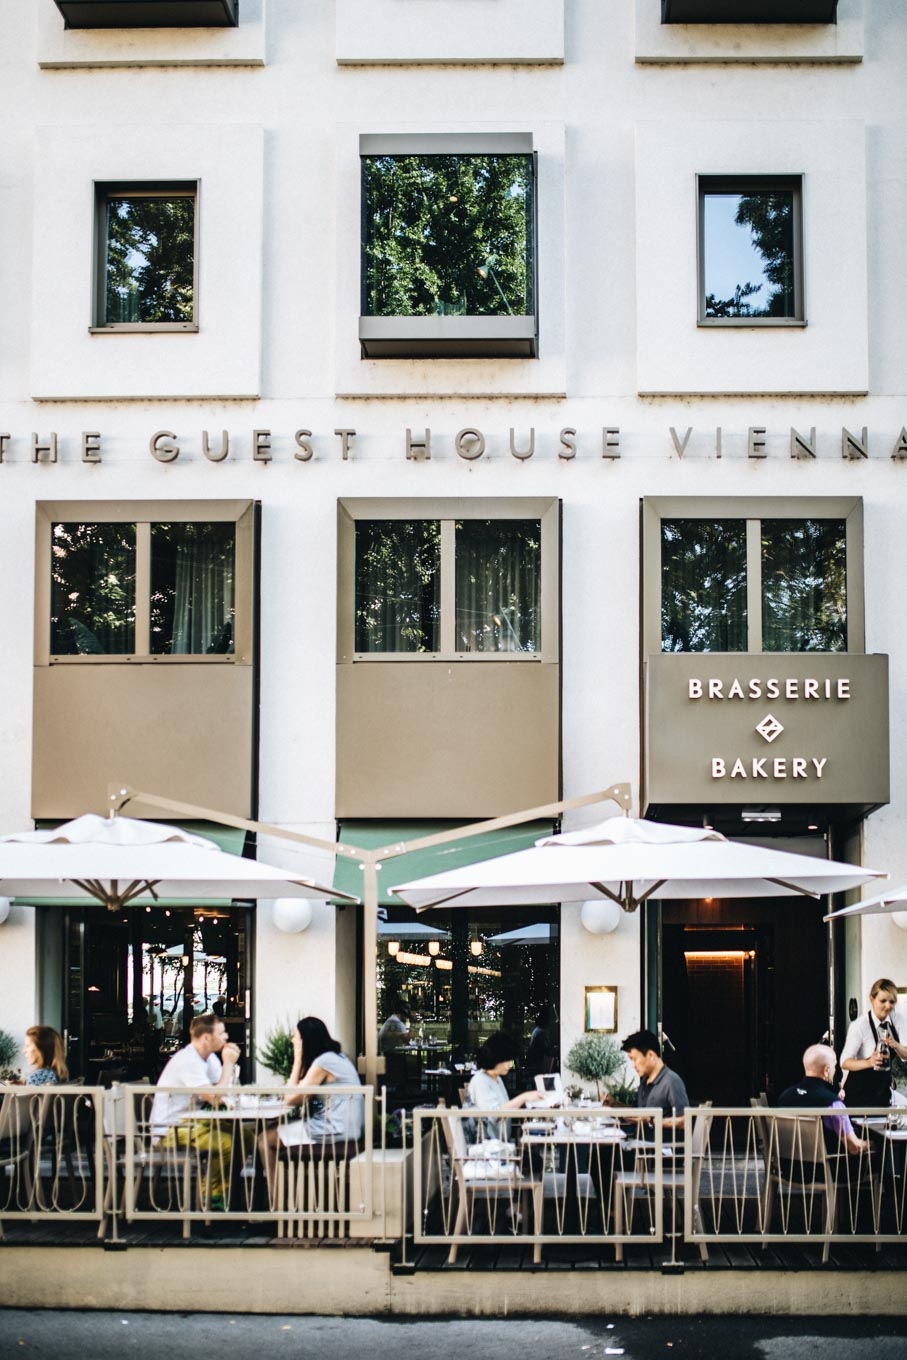 Home away from home: The Guesthouse Vienna | You Rock My Life